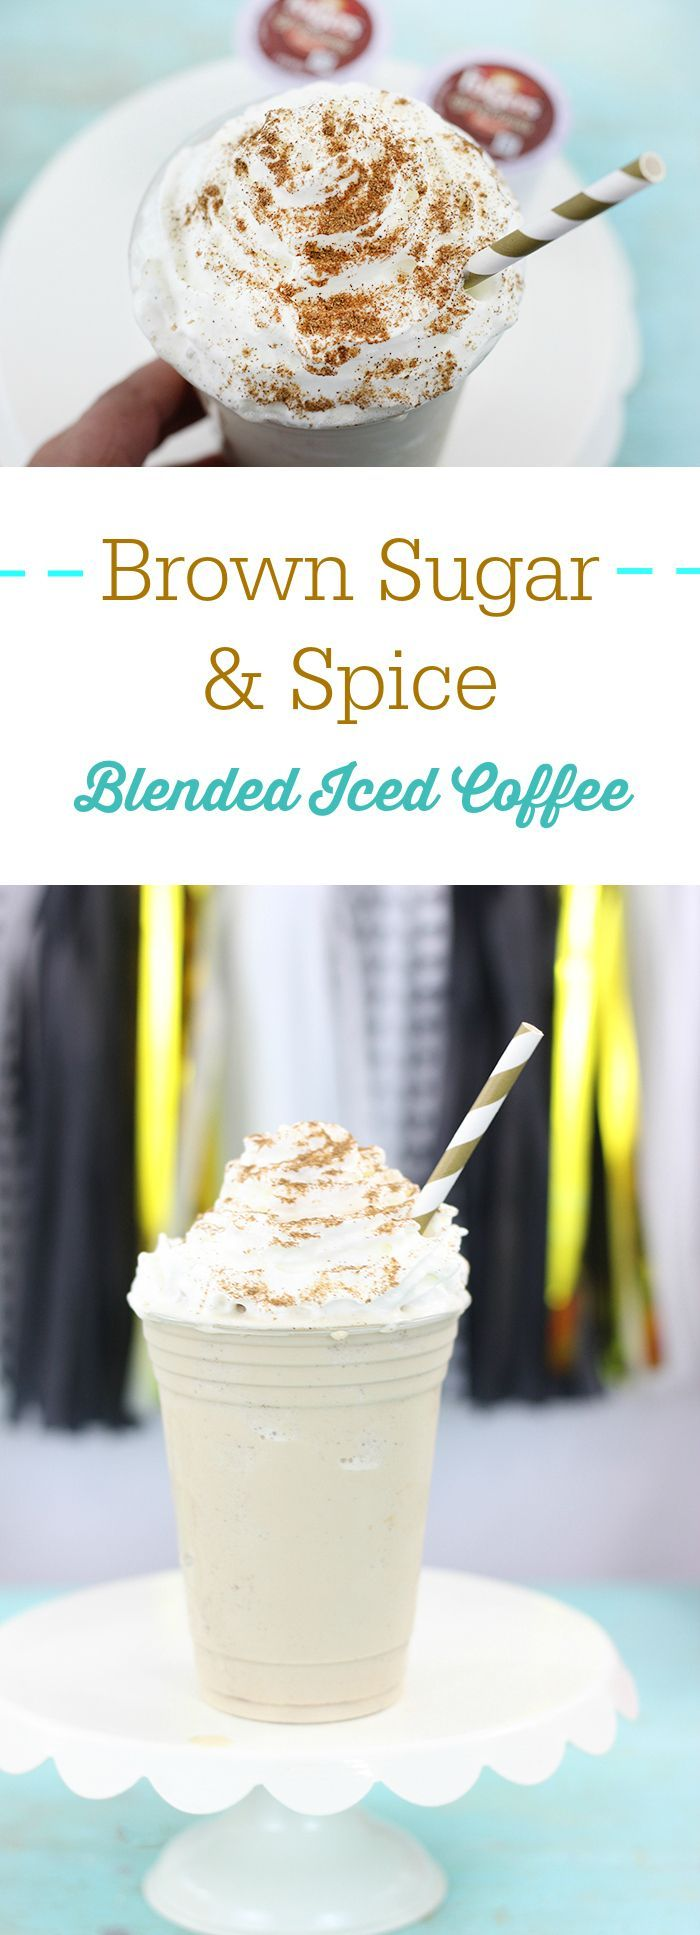 Brown Sugar & Spice Blended Iced Coffee at Home.